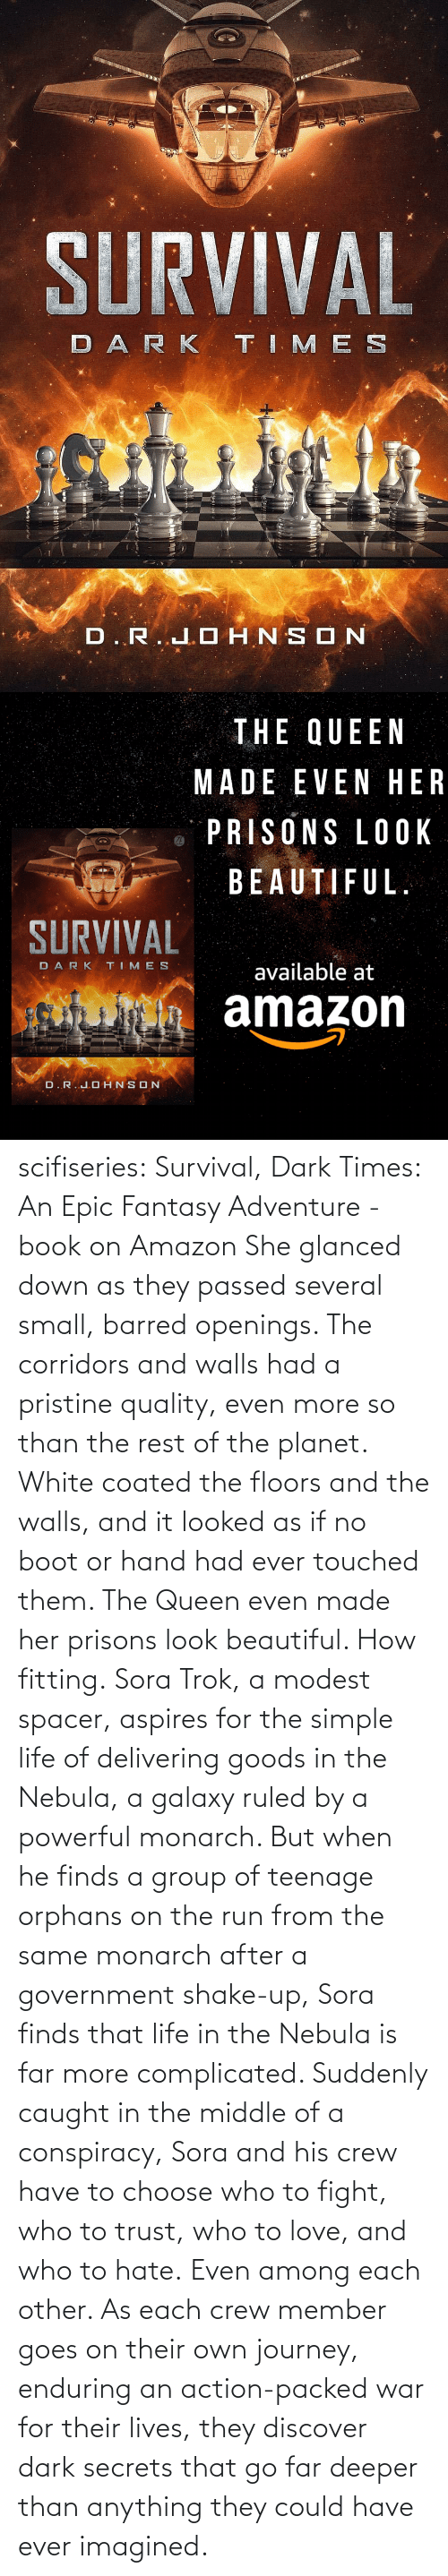 Goods: scifiseries: Survival, Dark Times: An Epic Fantasy Adventure - book on Amazon  She glanced down as they  passed several small, barred openings. The corridors and walls had a  pristine quality, even more so than the rest of the planet. White coated  the floors and the walls, and it looked as if no boot or hand had ever  touched them.  The Queen even made her prisons look beautiful.  How fitting. Sora  Trok, a modest spacer, aspires for the simple life of delivering goods  in the Nebula, a galaxy ruled by a powerful monarch. But when he finds a  group of teenage orphans on the run from the same monarch after a  government shake-up, Sora finds that life in the Nebula is far more complicated.  Suddenly  caught in the middle of a conspiracy, Sora and his crew have to choose  who to fight, who to trust, who to love, and who to hate. Even among each other.  As  each crew member goes on their own journey, enduring an action-packed  war for their lives, they discover dark secrets that go far deeper than  anything they could have ever imagined.